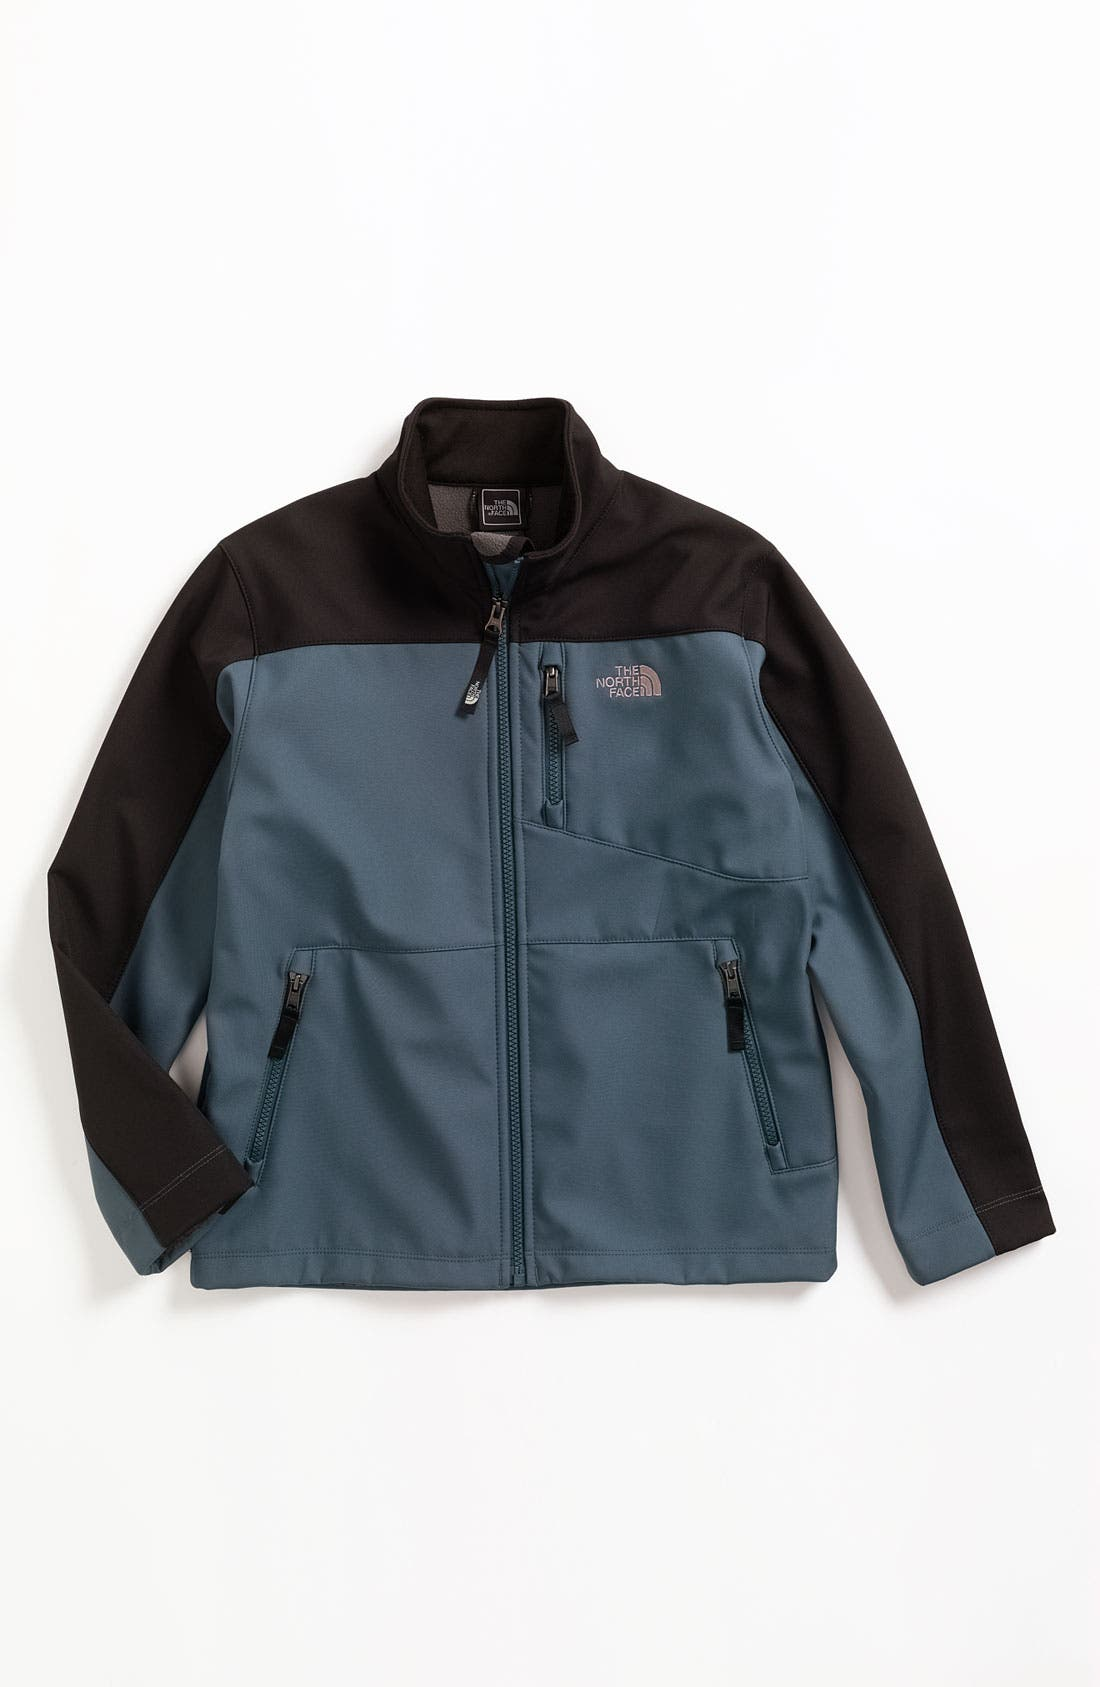 Alternate Image 1 Selected - The North Face 'Apex Bionic' Jacket (Big Boys)